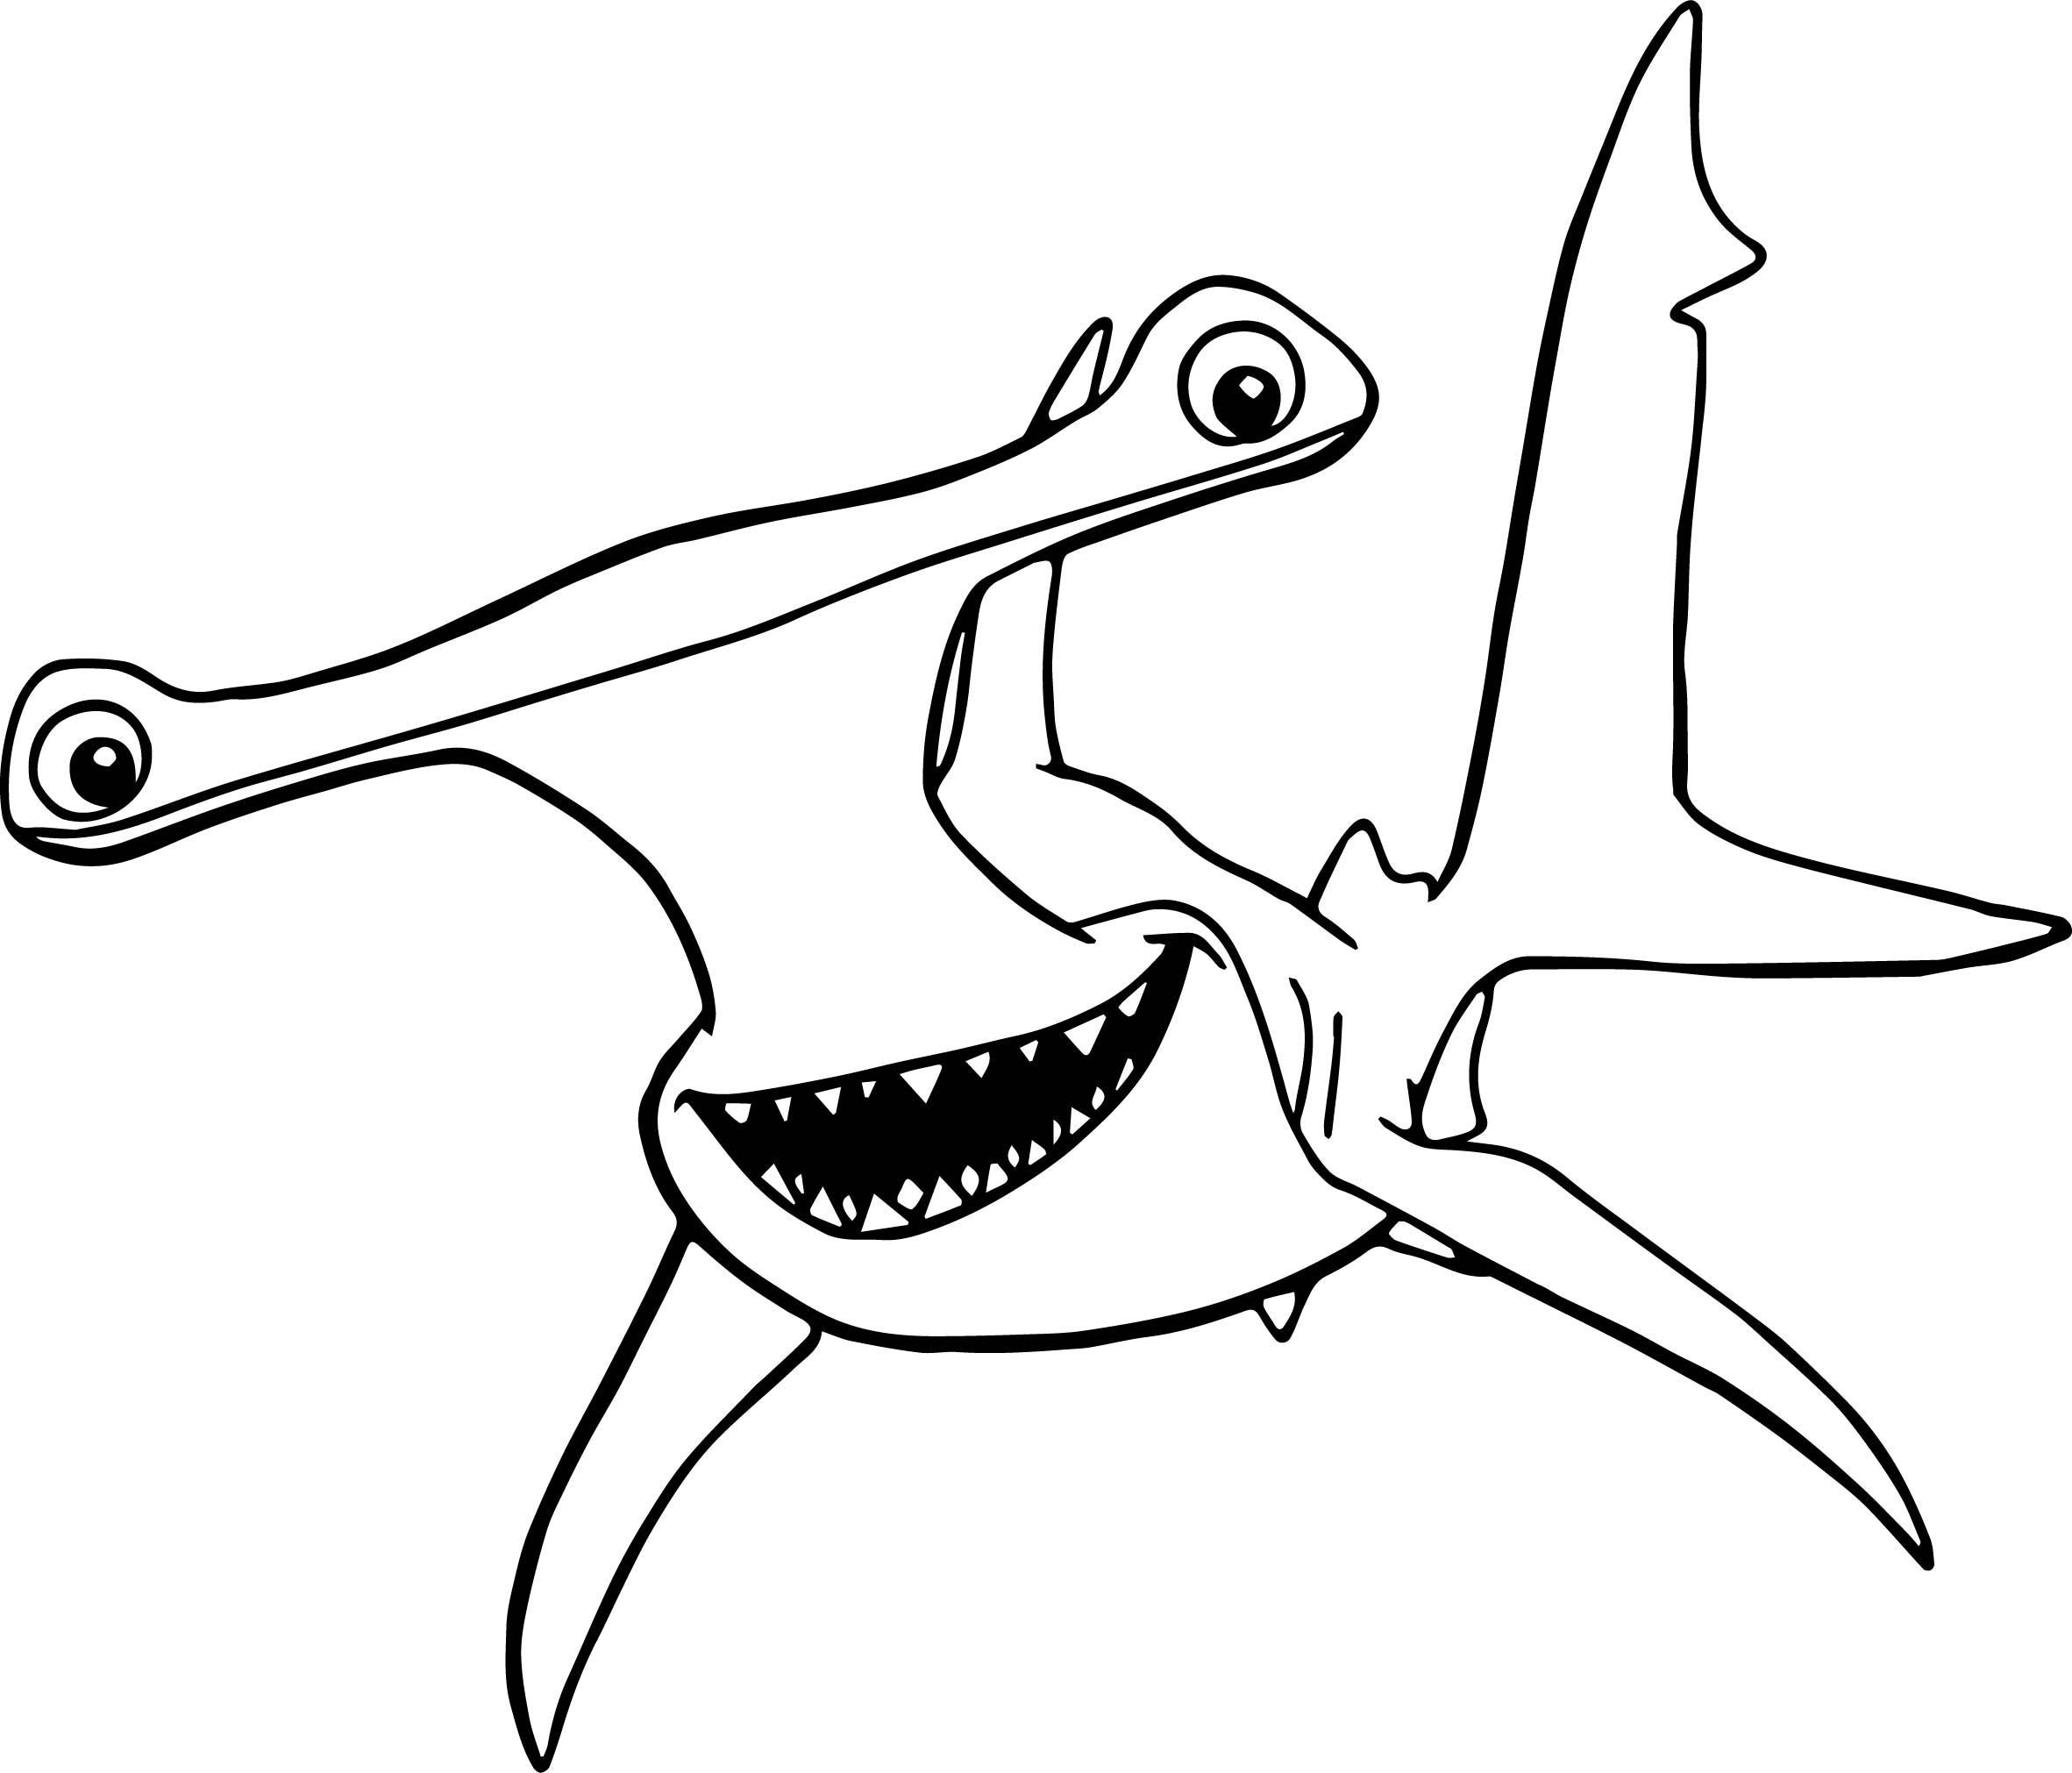 Cool Disney Finding Nemo Anchor Coloring Pages Finding Nemo Coloring Pages Nemo Coloring Pages Finding Nemo Coloring Sheets